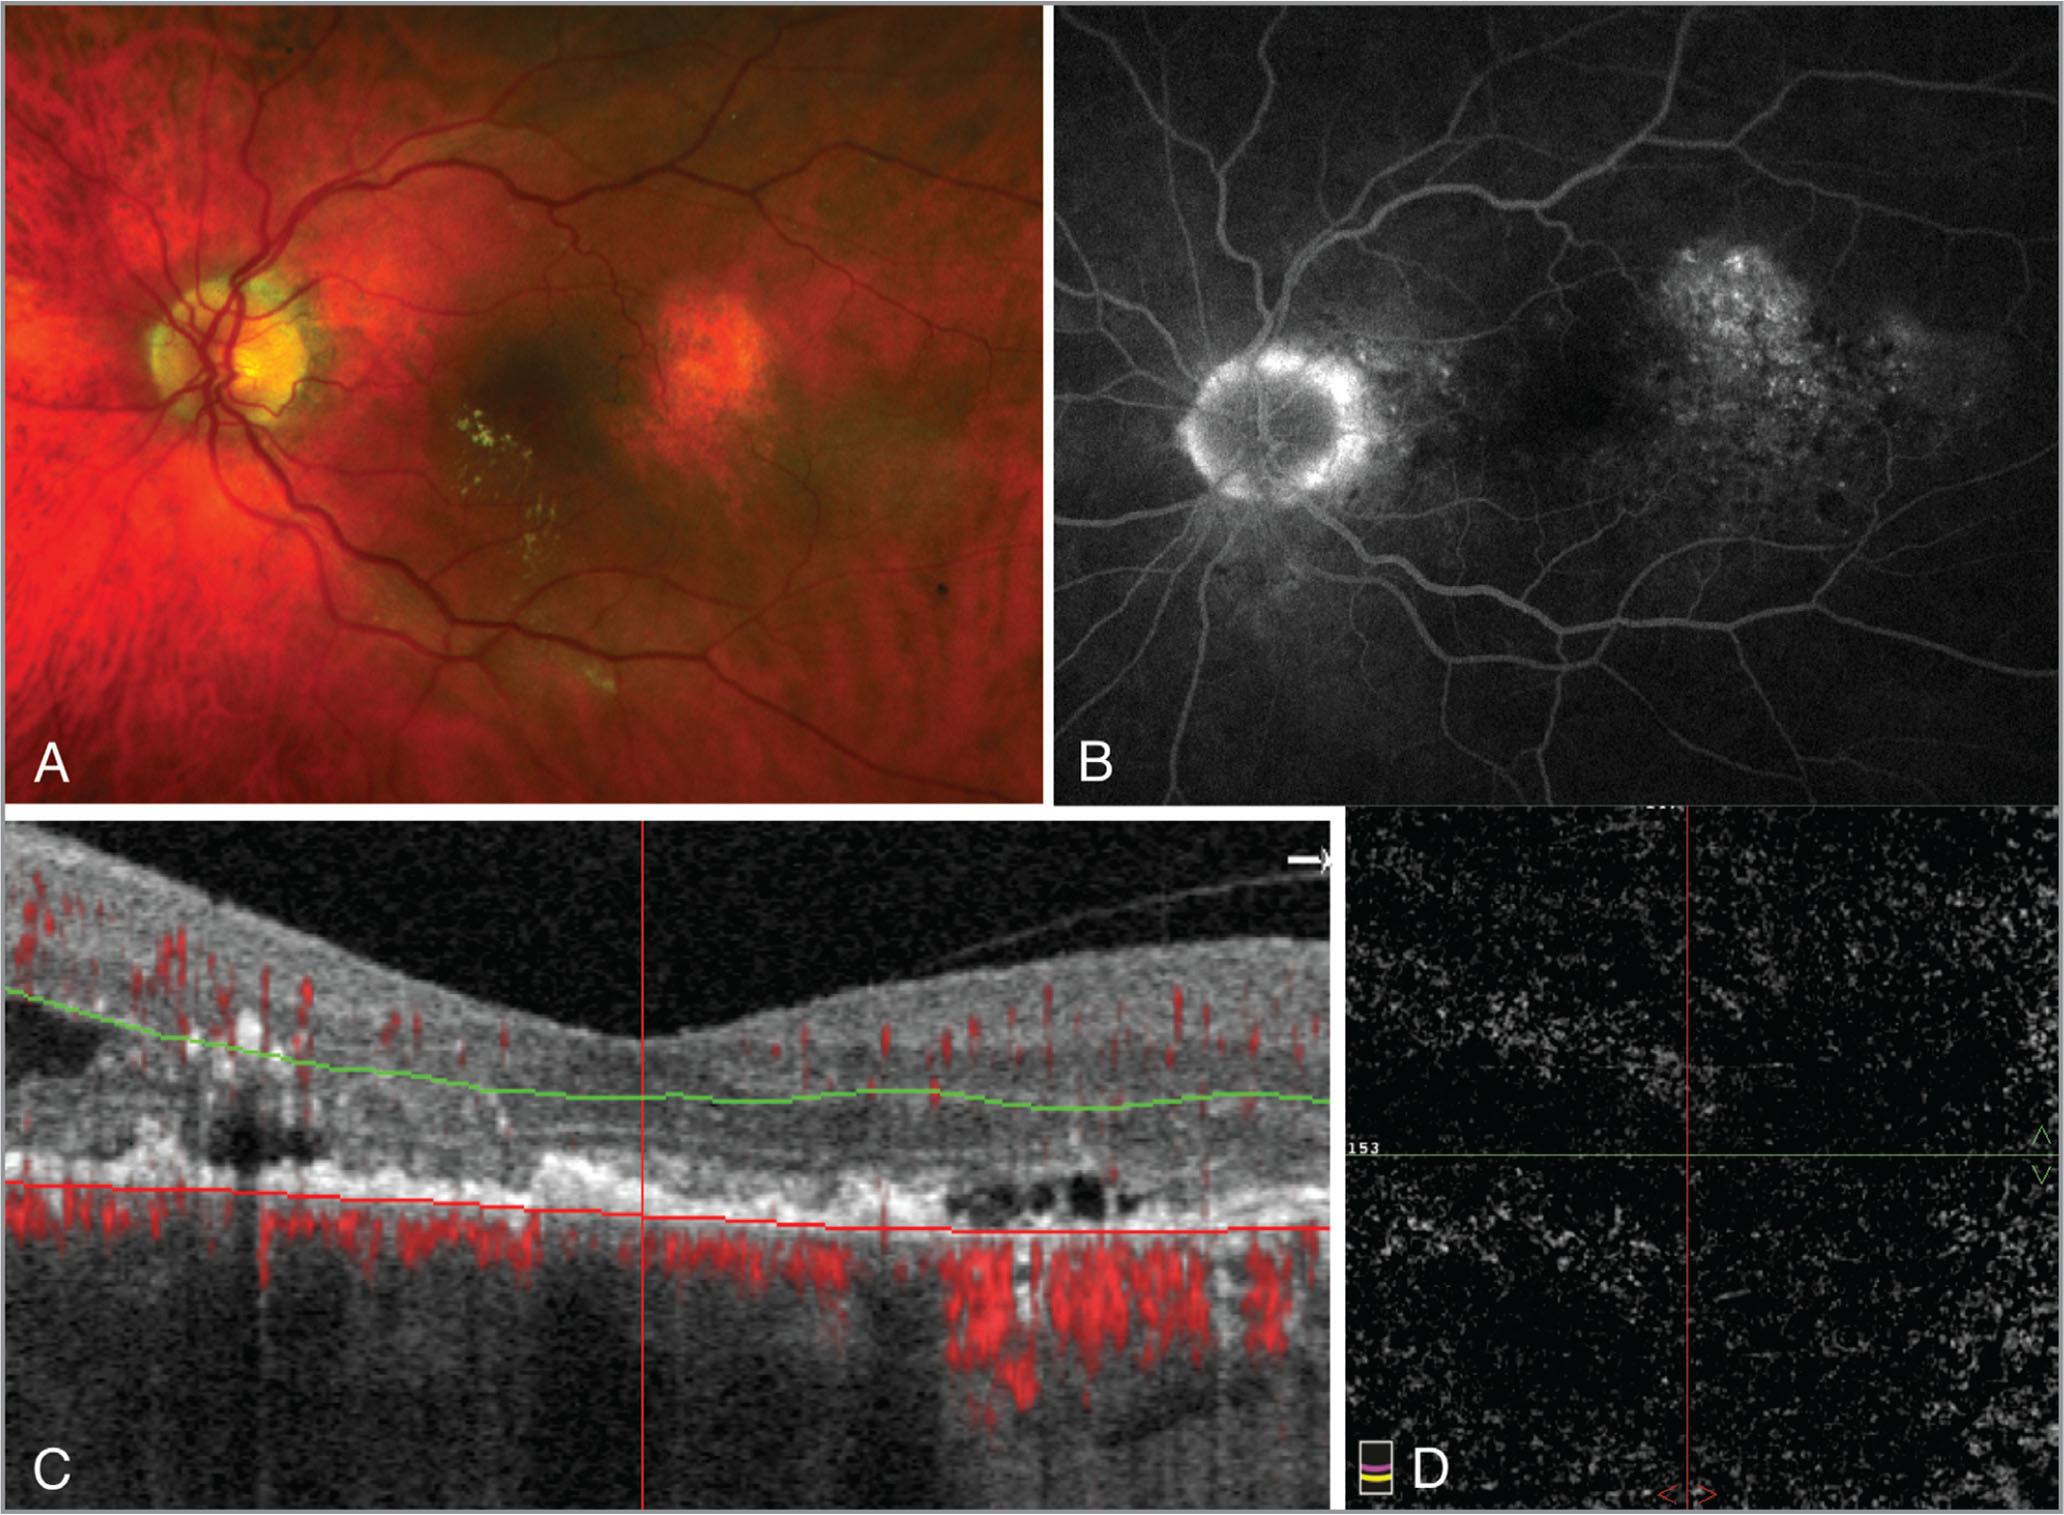 (A) Fundus photo of the left eye depicting macular drusenoid deposits with retinal pigment epithelium mottling. (B) Late-frame fluorescein angiography image of the left eye shows temporal hyperfluorescence. (C) An optical coherence tomography (OCT) B-scan with outer retina segmentation and OCT angiography (OCTA) decorrelation signal overlay show intra- and subretinal fluid with subretinal hyperreflective deposits and no increase in flow signal. (D) Corresponding en face OCTA of the outer retina shows no choroidal neovascularization.